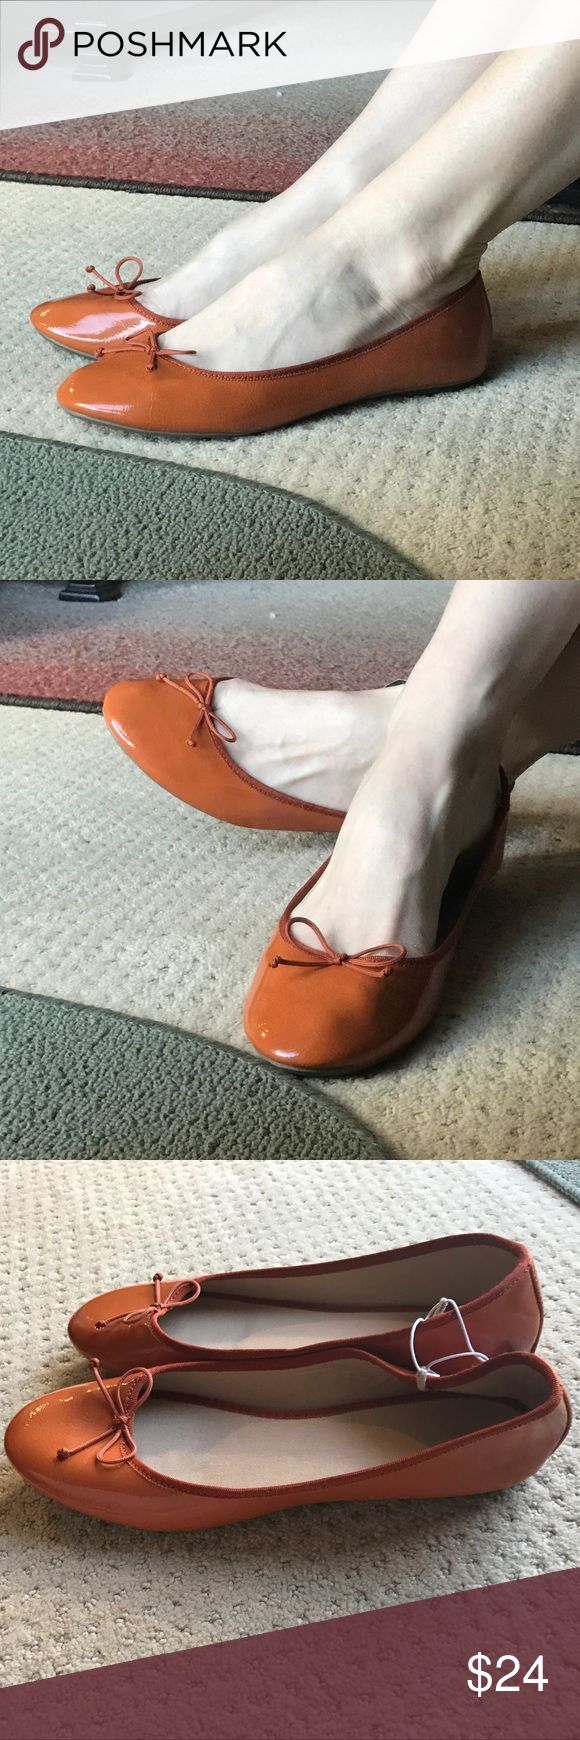 ORANGE FLATS ballet shoes FAUX PATENT Leather sz 9 New with tags...I love this color! An autumn orange, not too bright or bold but smooth and creamy. Faux PATENT leather vegan. And so comfortable! Beautiful hue! (my1) Old Navy Shoes Flats & Loafers